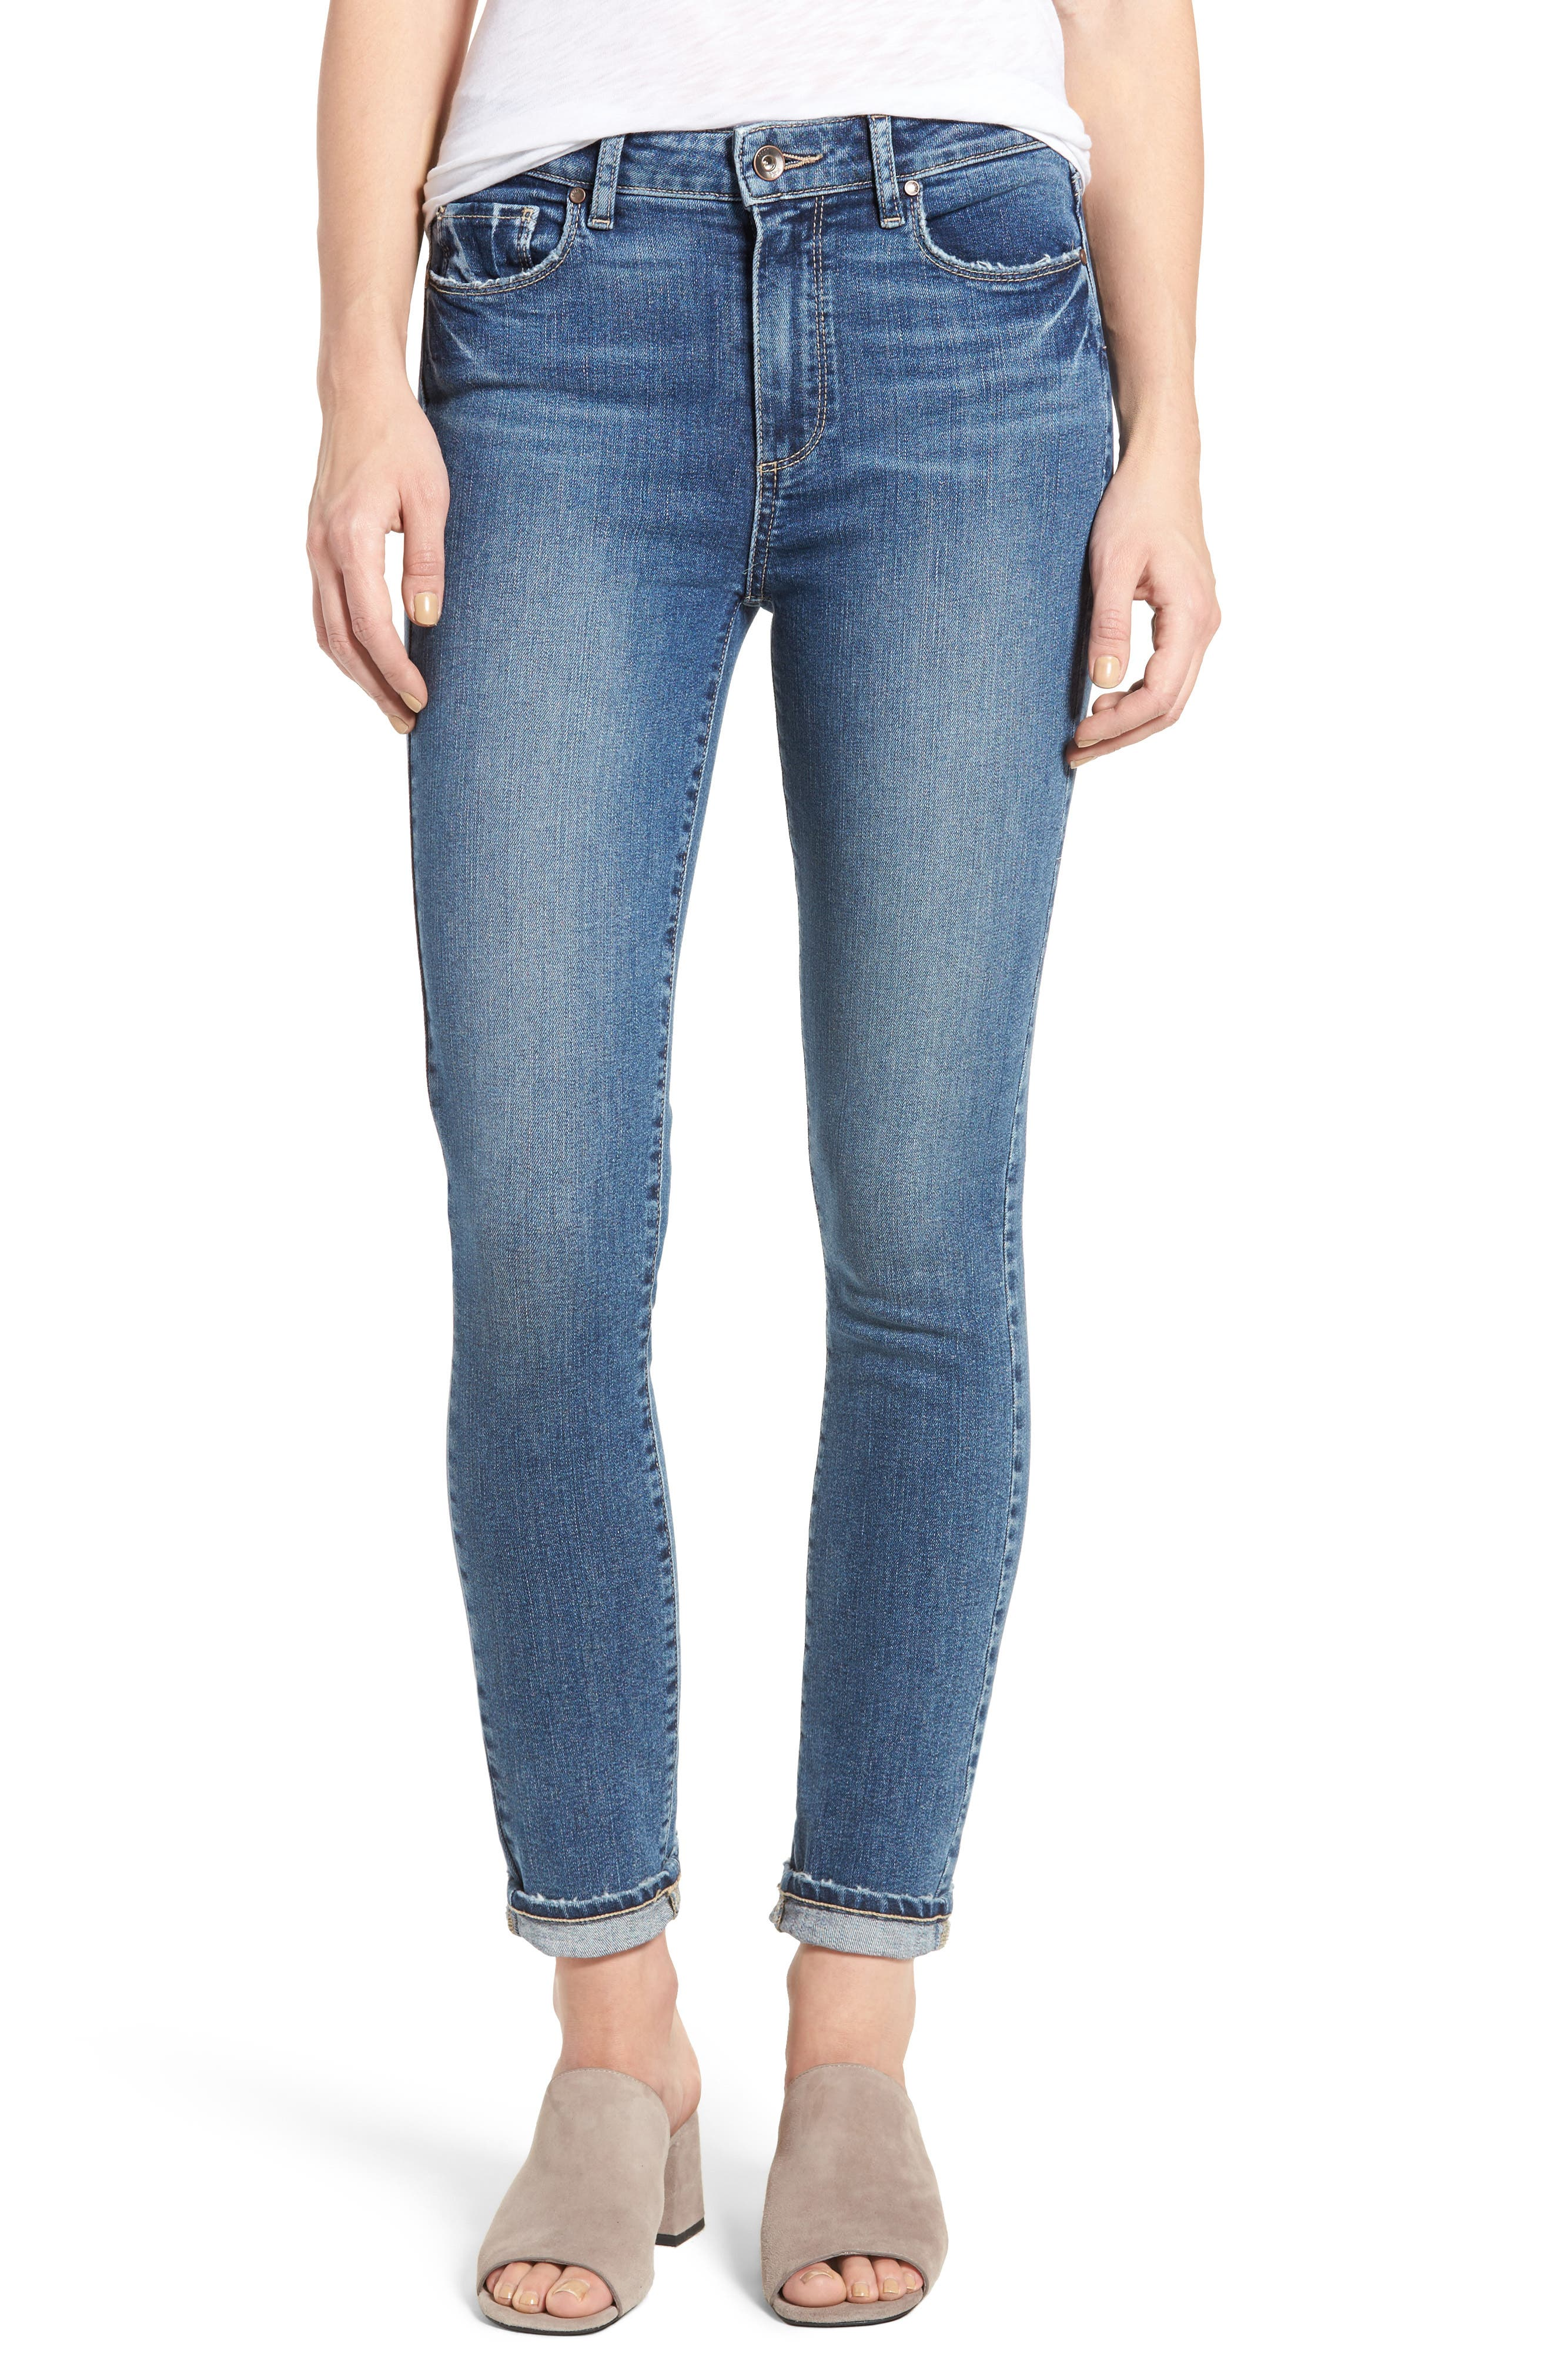 Hoxton High Waist Ultra Skinny Jeans,                         Main,                         color, 400